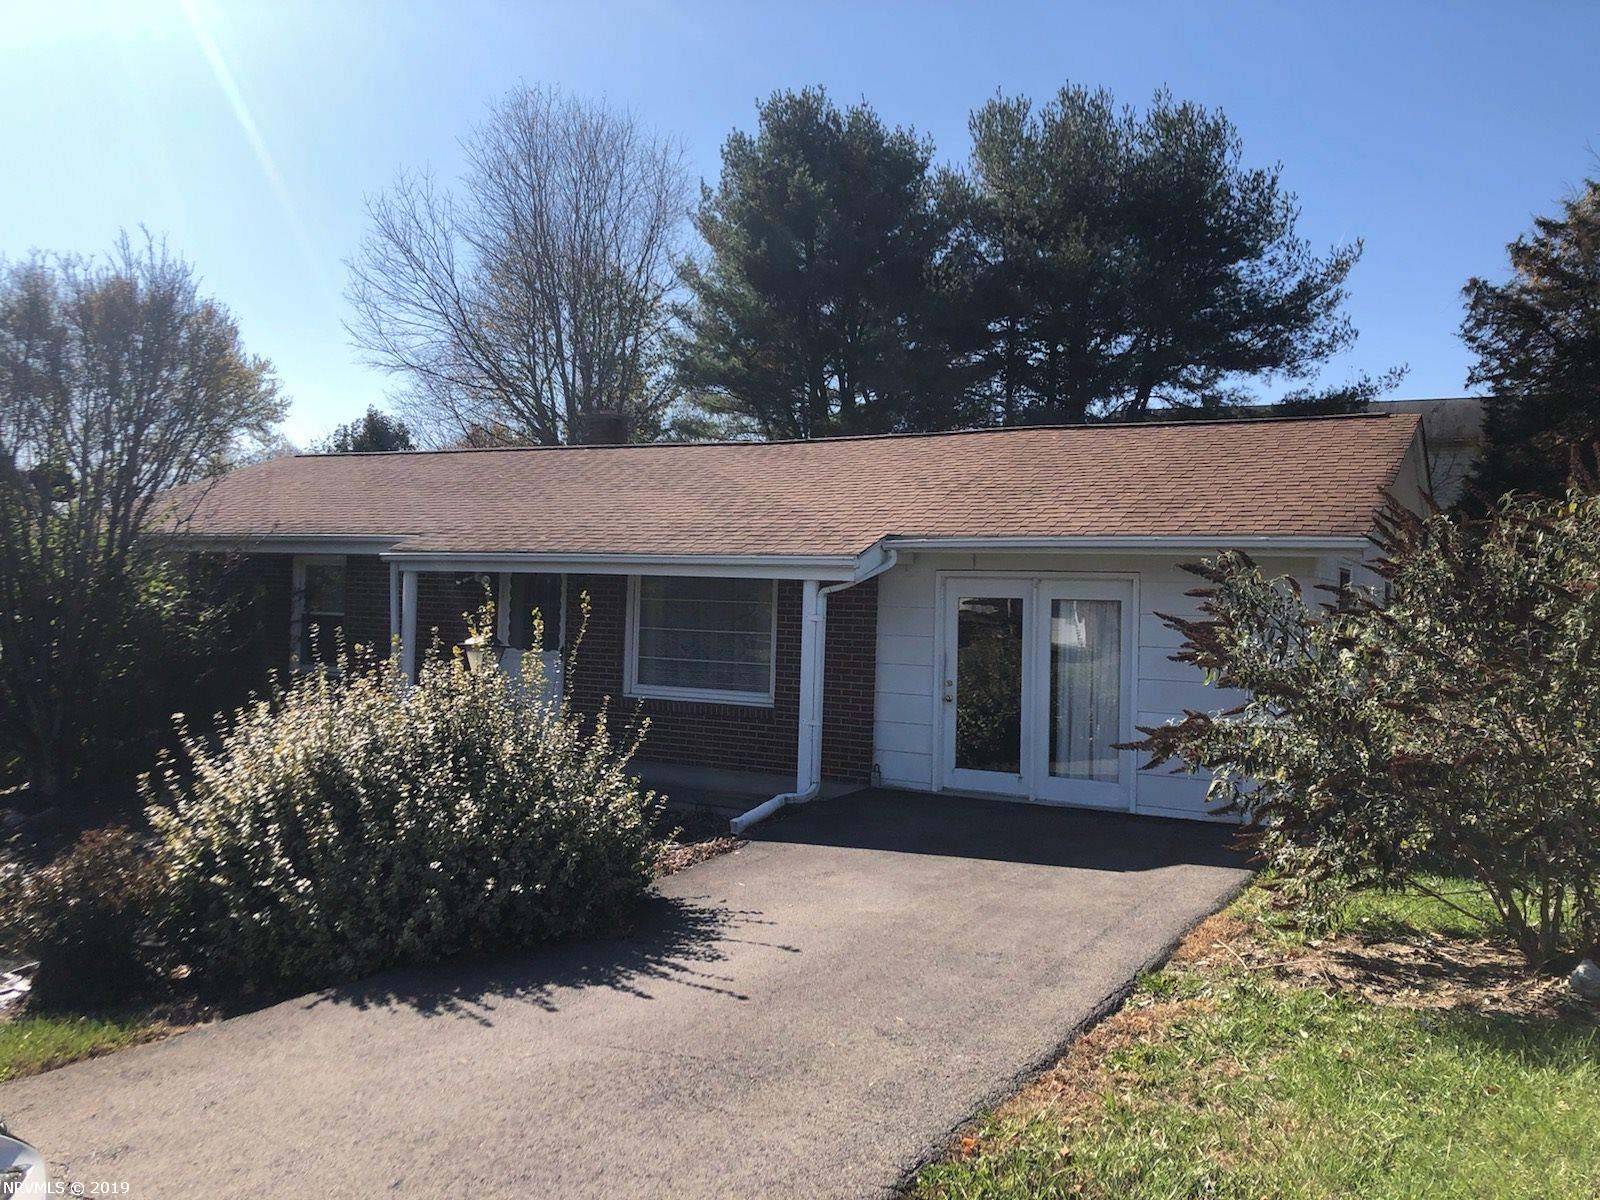 Brick ranch with full unfinished basement. hardwood floors throughout the main living area. Replacement windows except in the family room, newer bathroom cabinet, and storage building. Metal carport is also on this property.  Additional lot conveys wit heh is property.